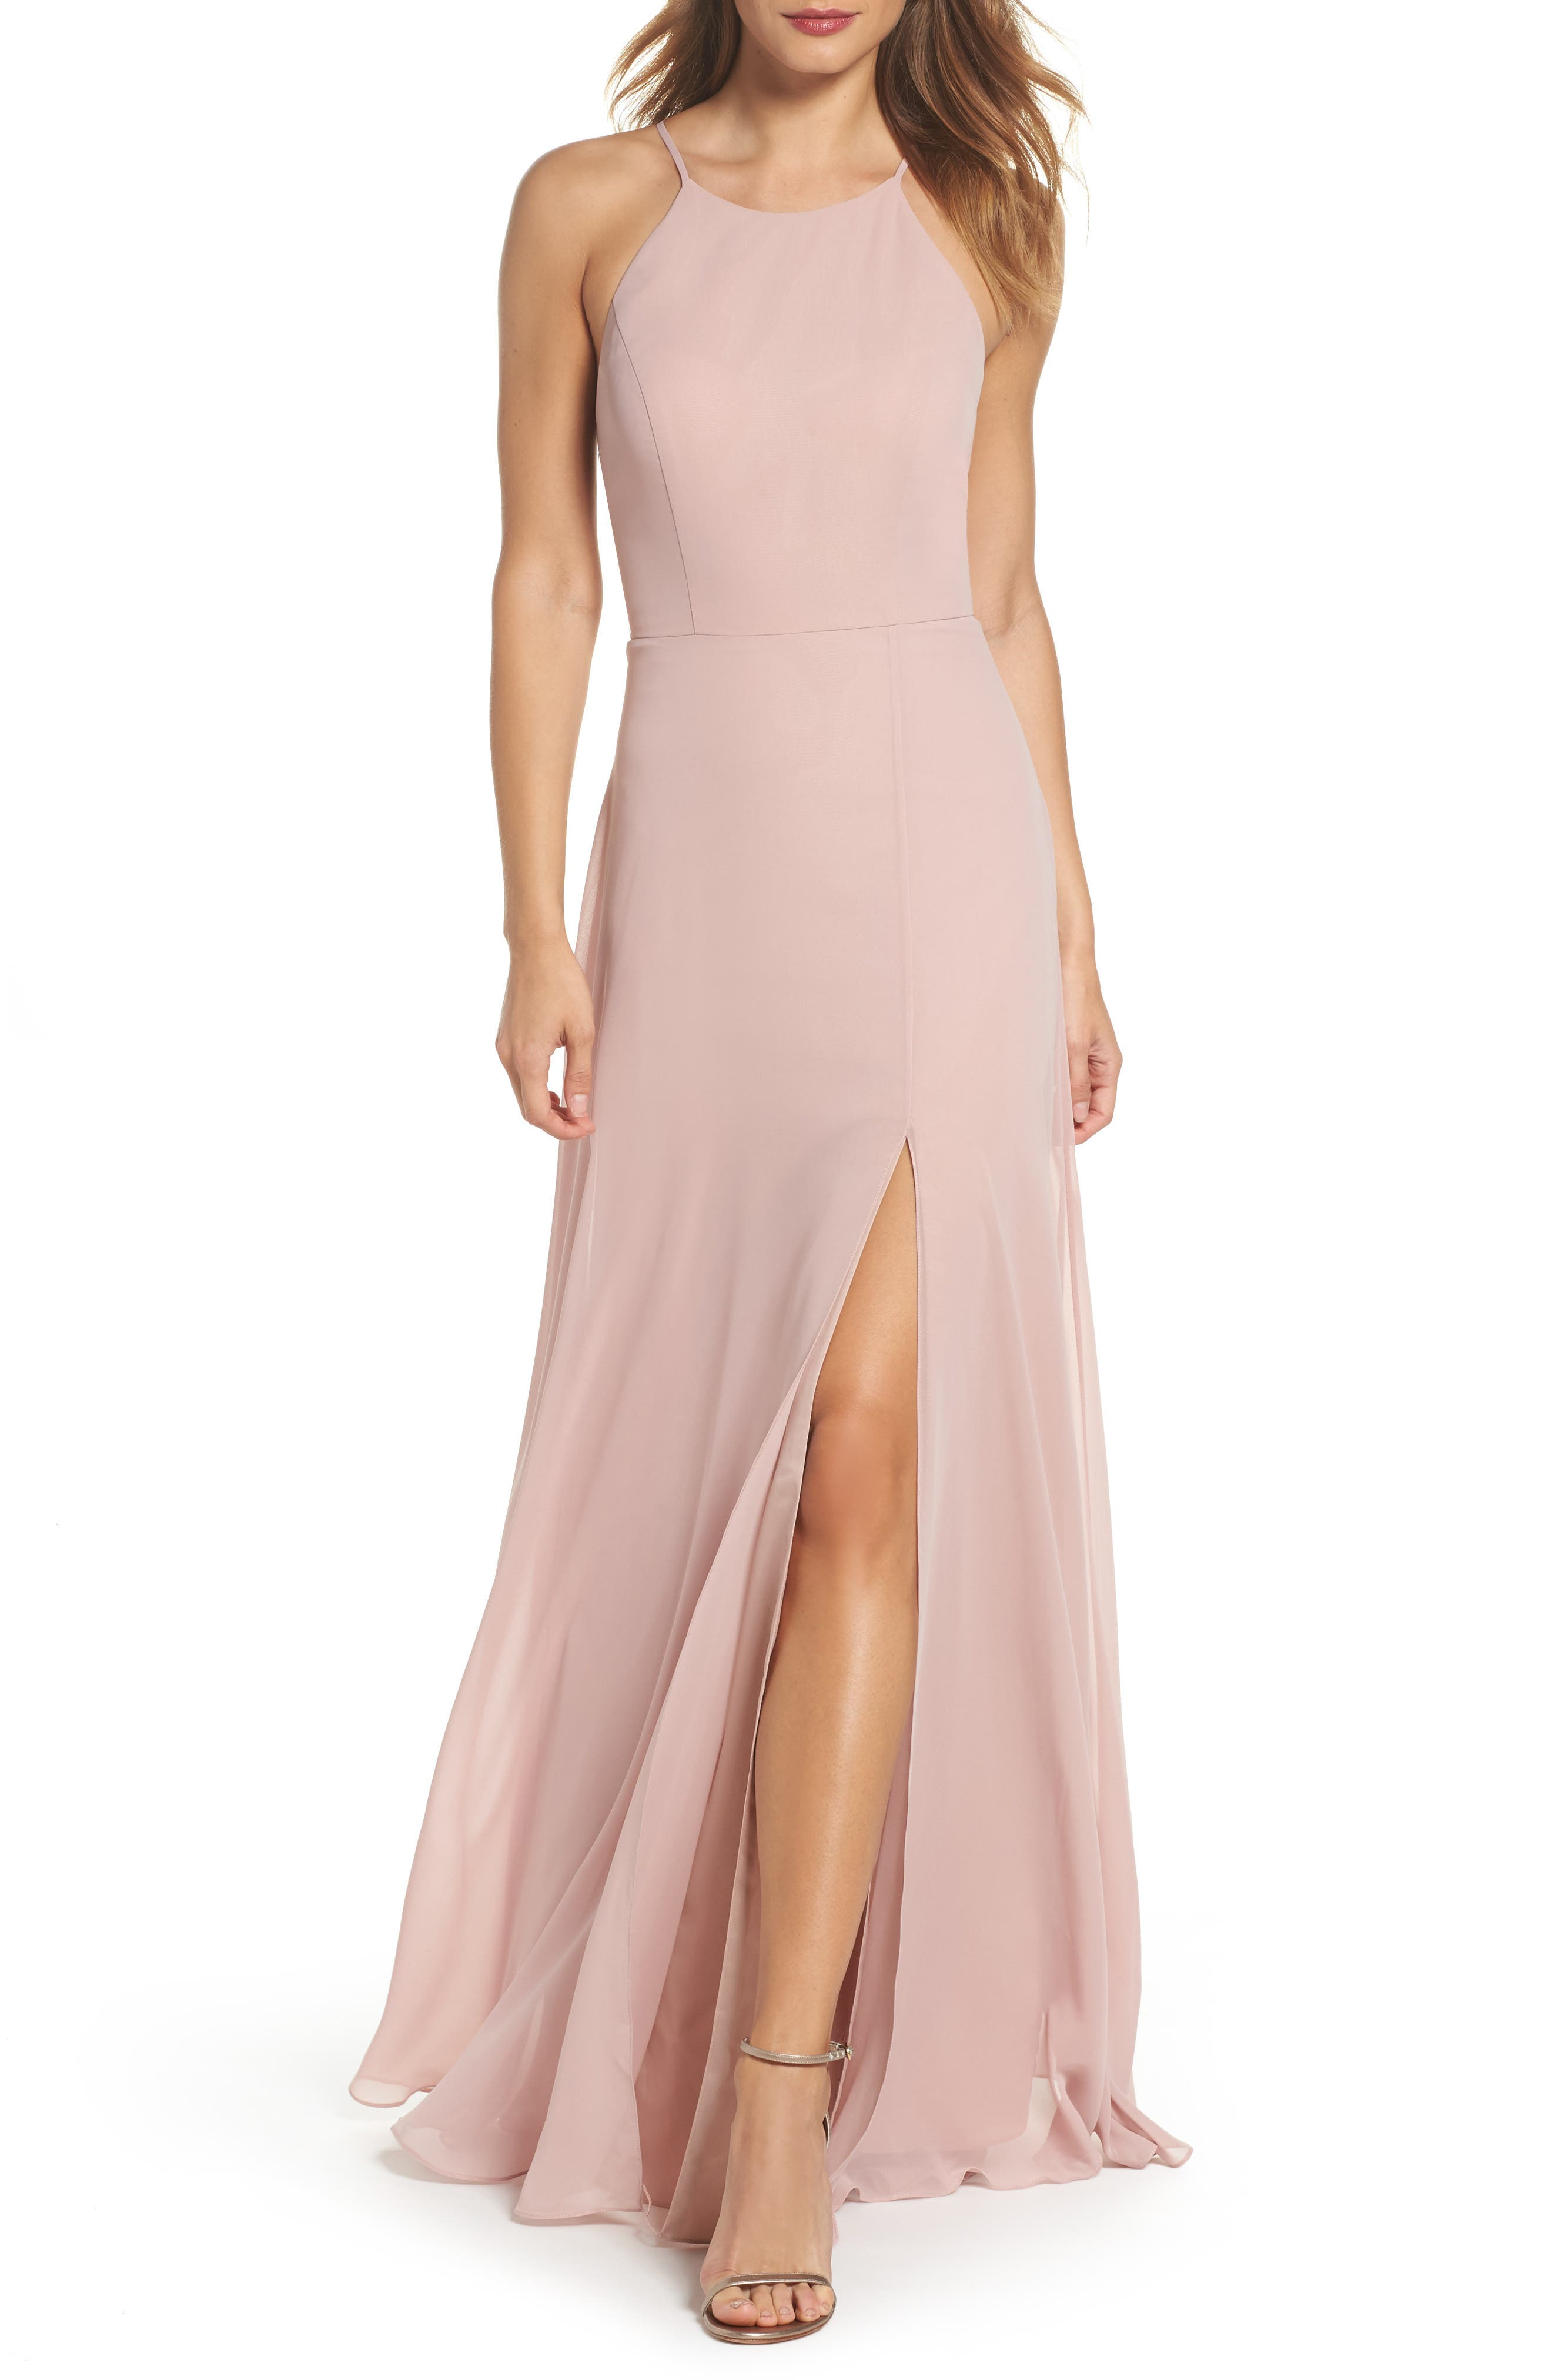 JENNY YOO, Kayla A-Line Halter Gown, Main thumbnail 1, color, WHIPPED APRICOT